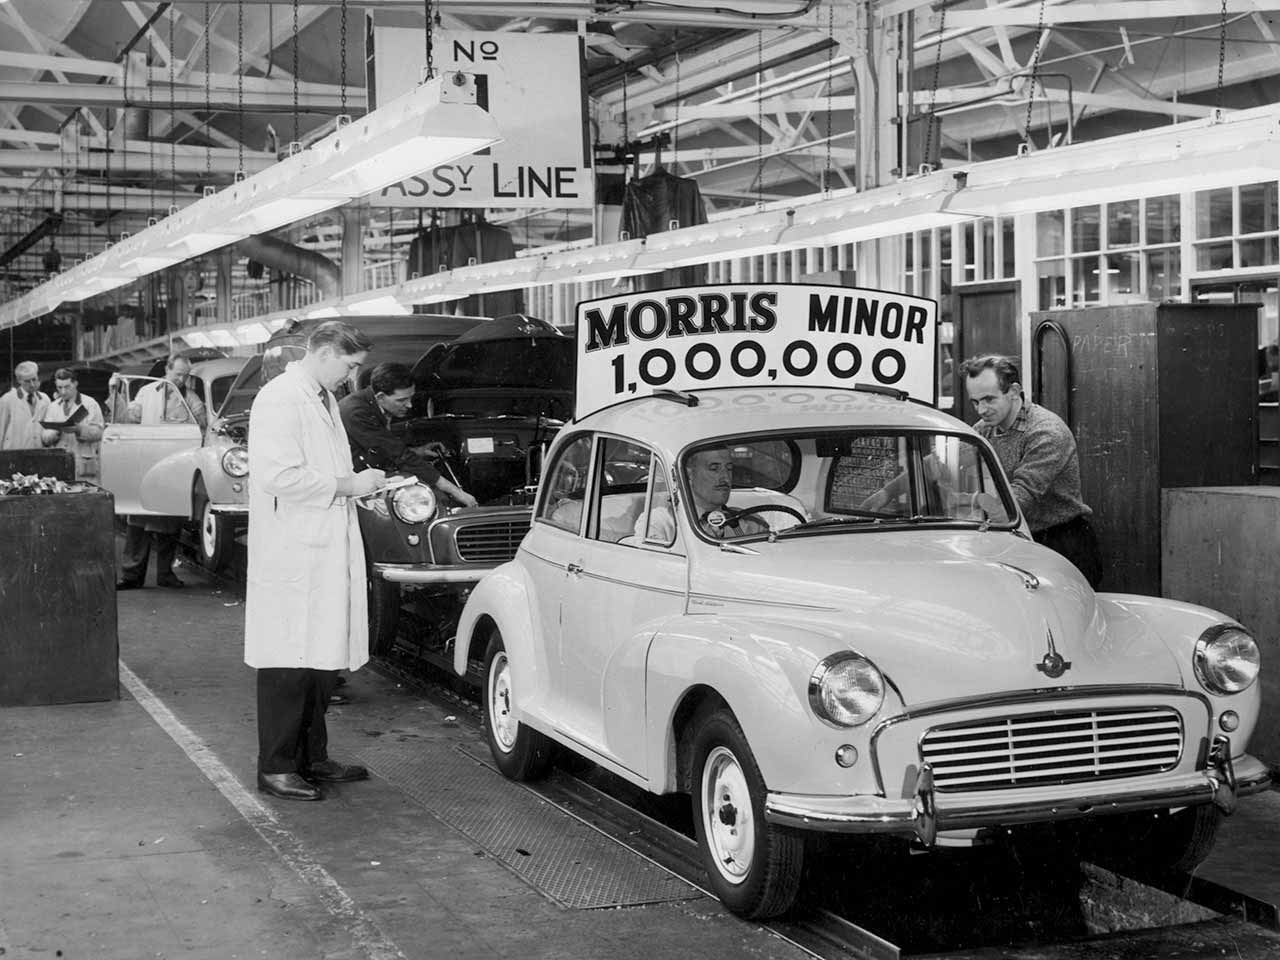 /contentlibrary/saga/publishing/verticals/motoring/cars/enjoying/29-morris-minor-3.jpg